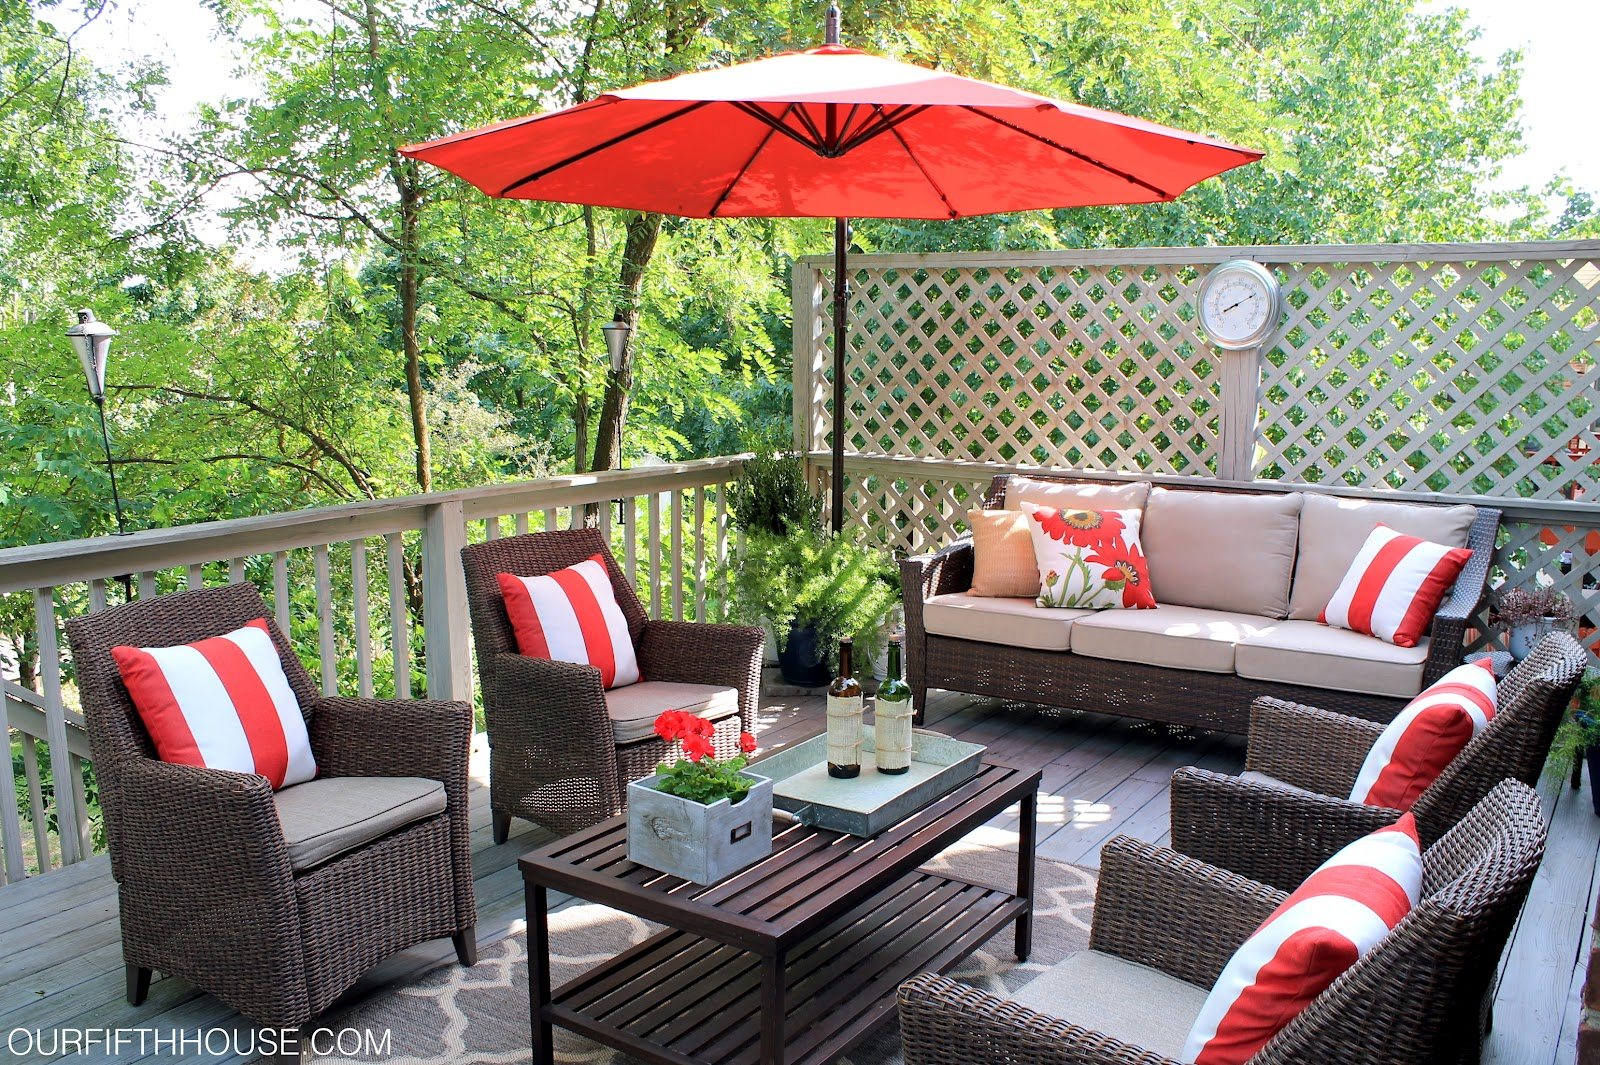 Outdoor living deck updates our fifth house for Designer outdoor furniture